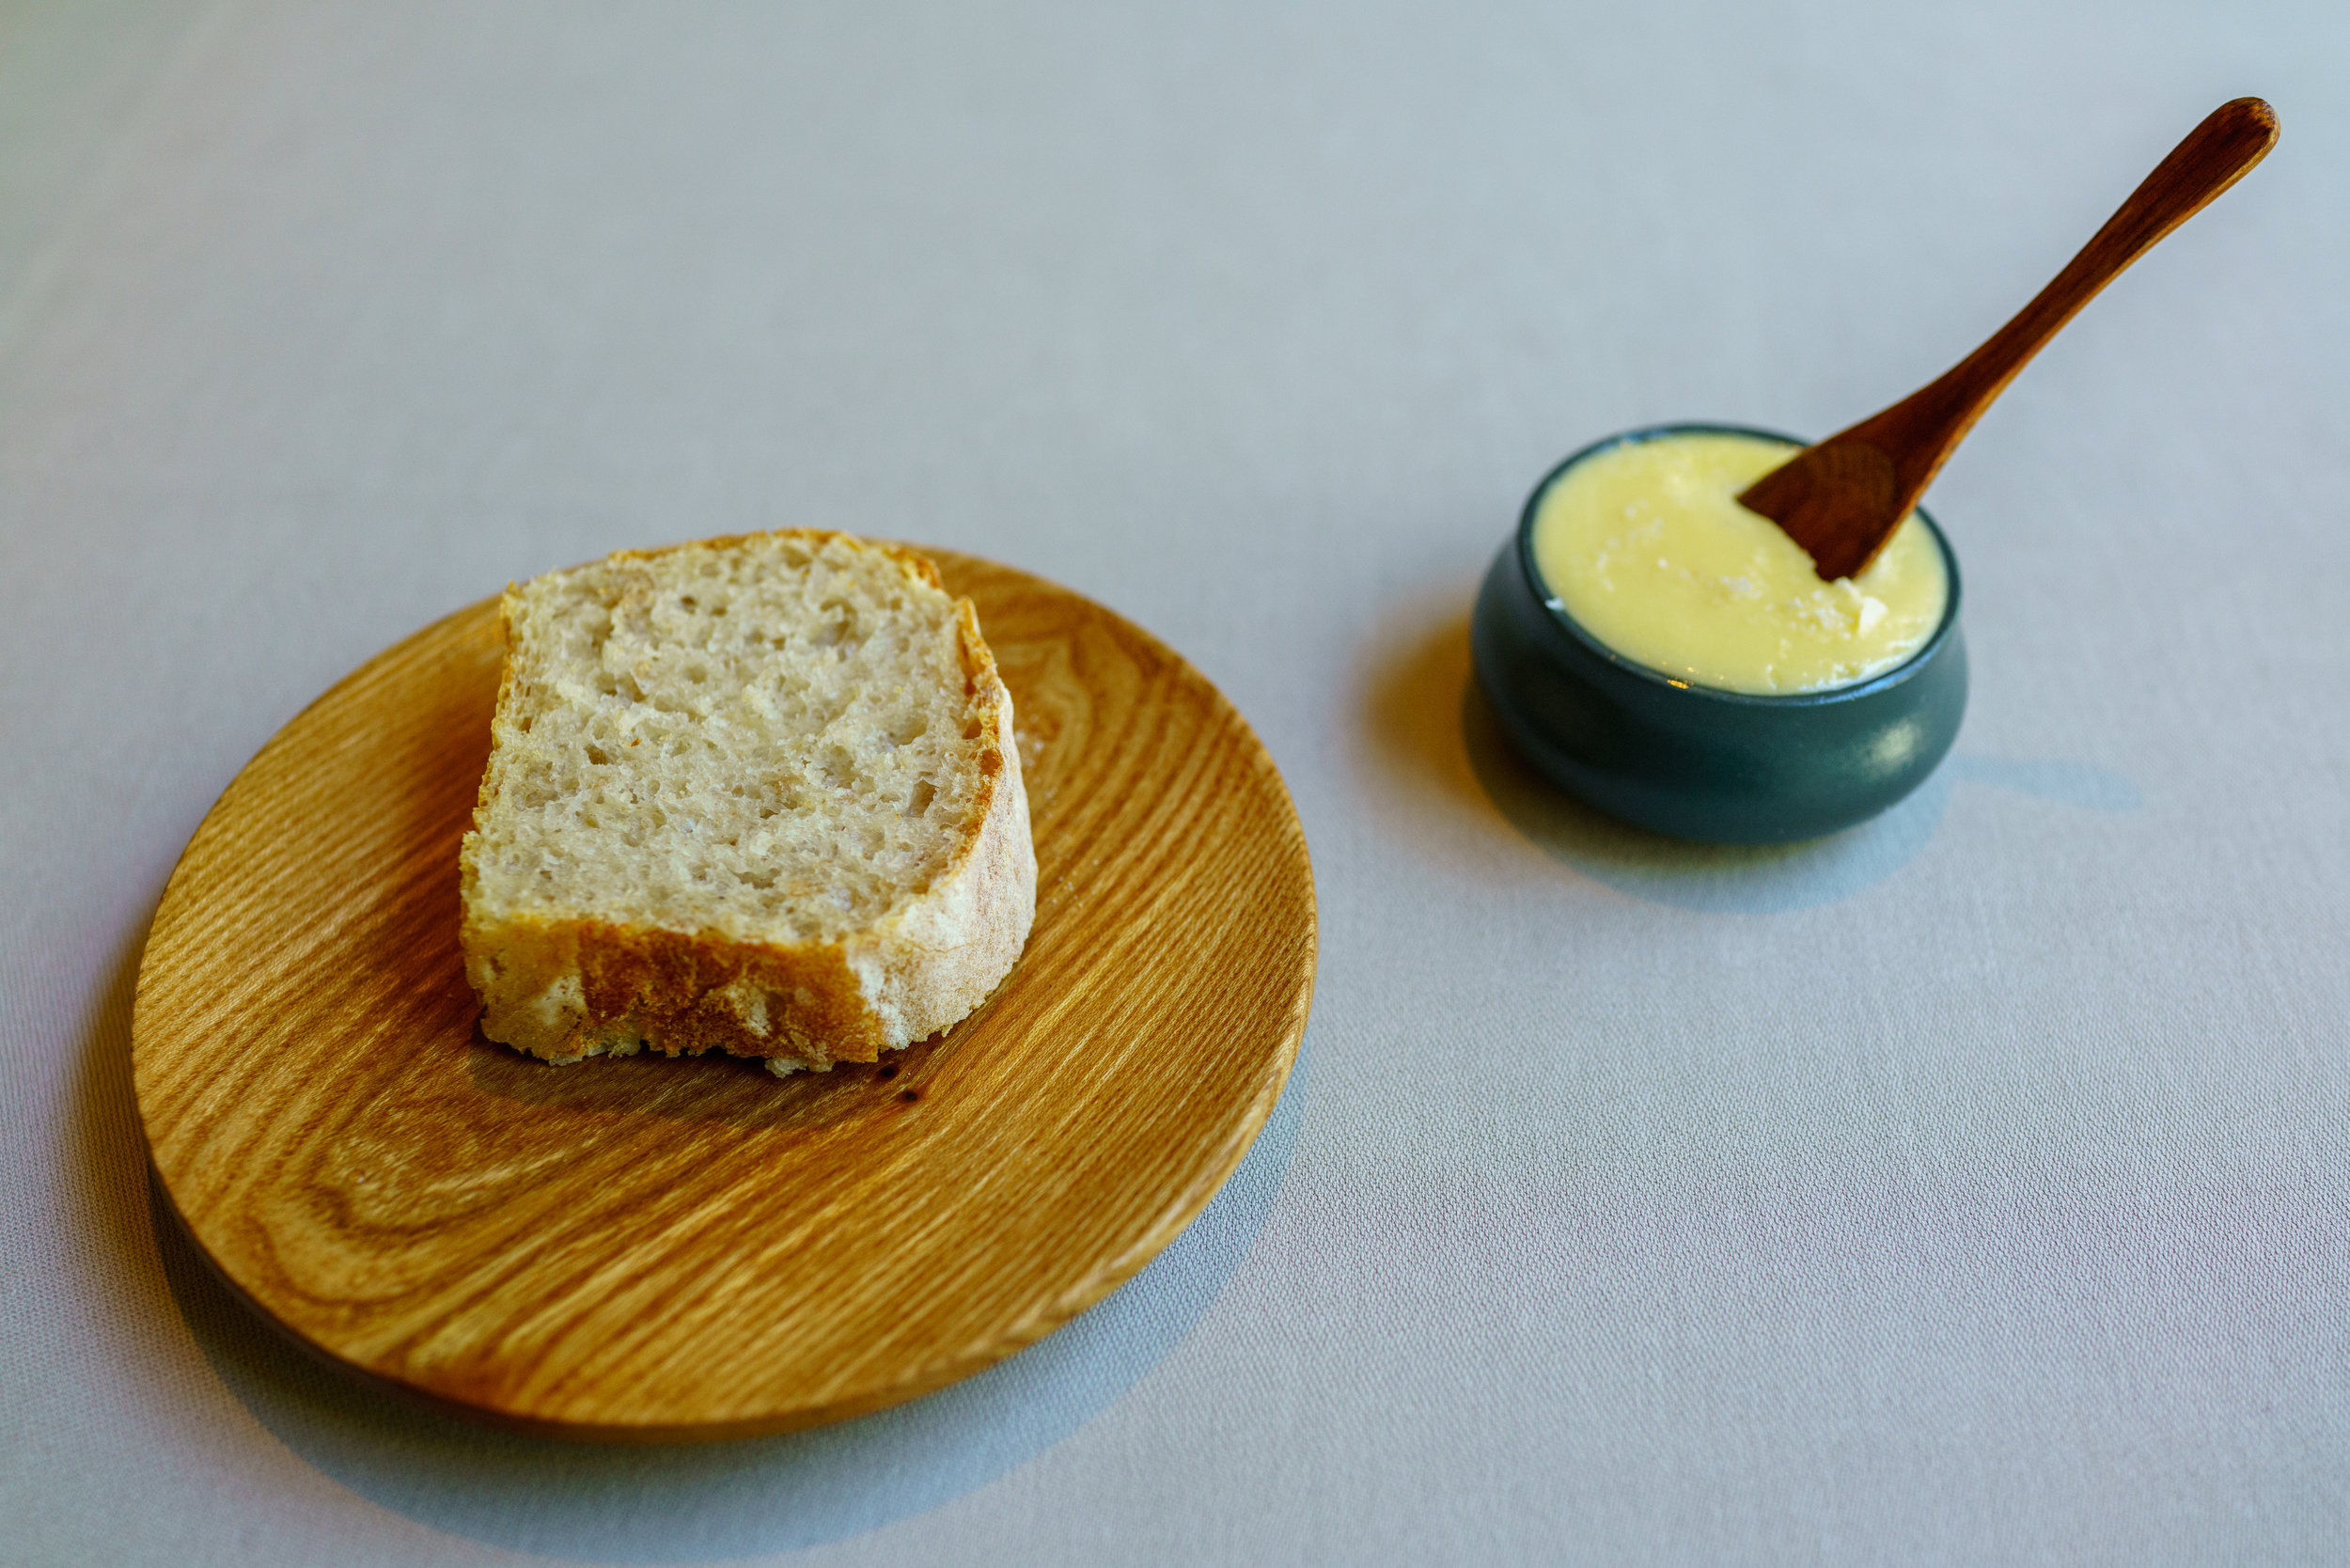 Homemade bread and house-churned butter